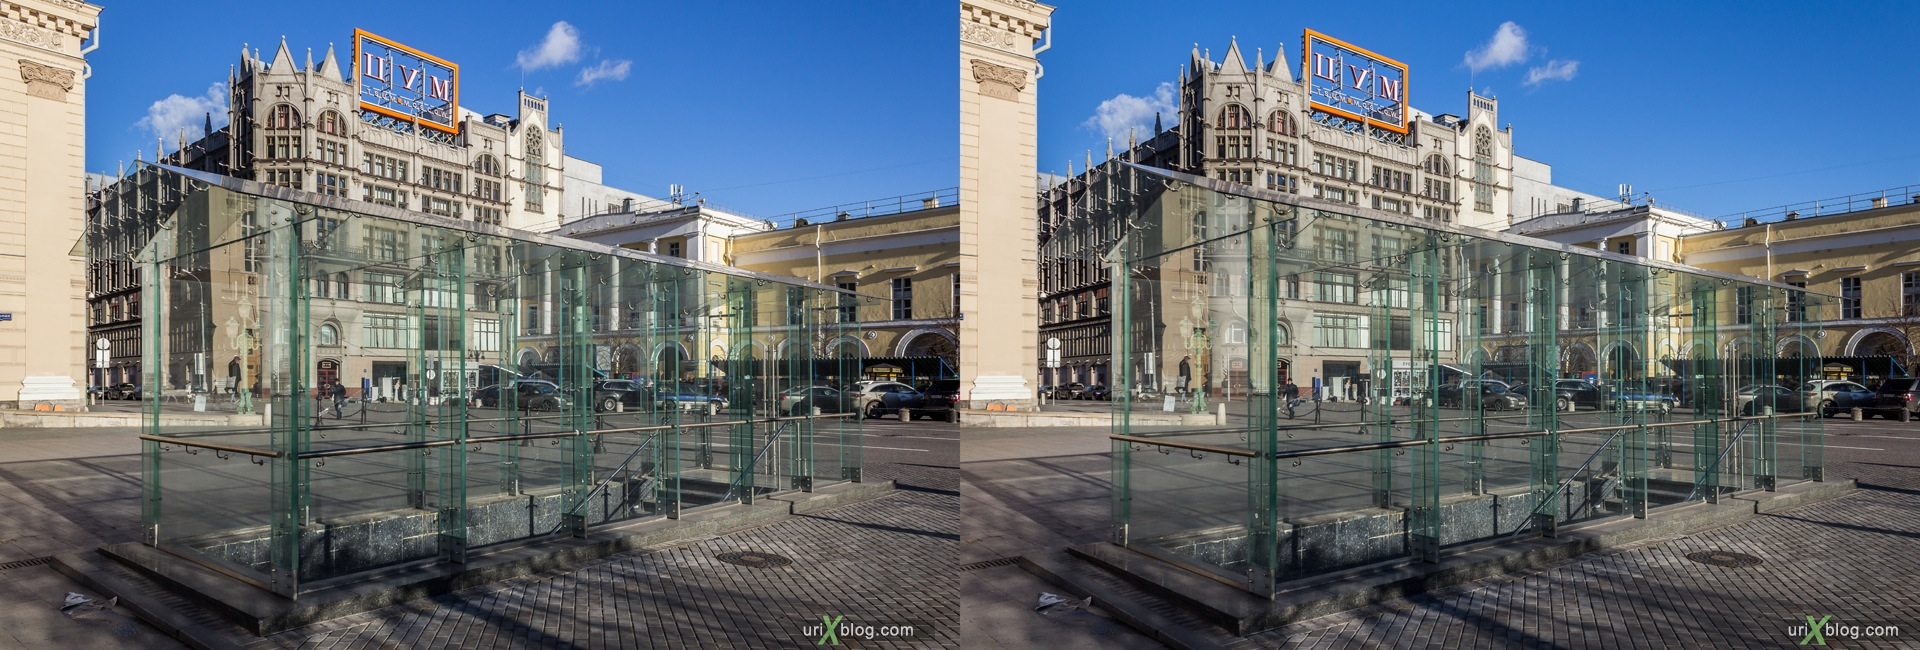 2013, Moscow, Russia, Teatralnaya square, Theatre square, Bolshow theatre, Grand theatre, TsUM, 3D, stereo pair, cross-eyed, crossview, cross view stereo pair, stereoscopic